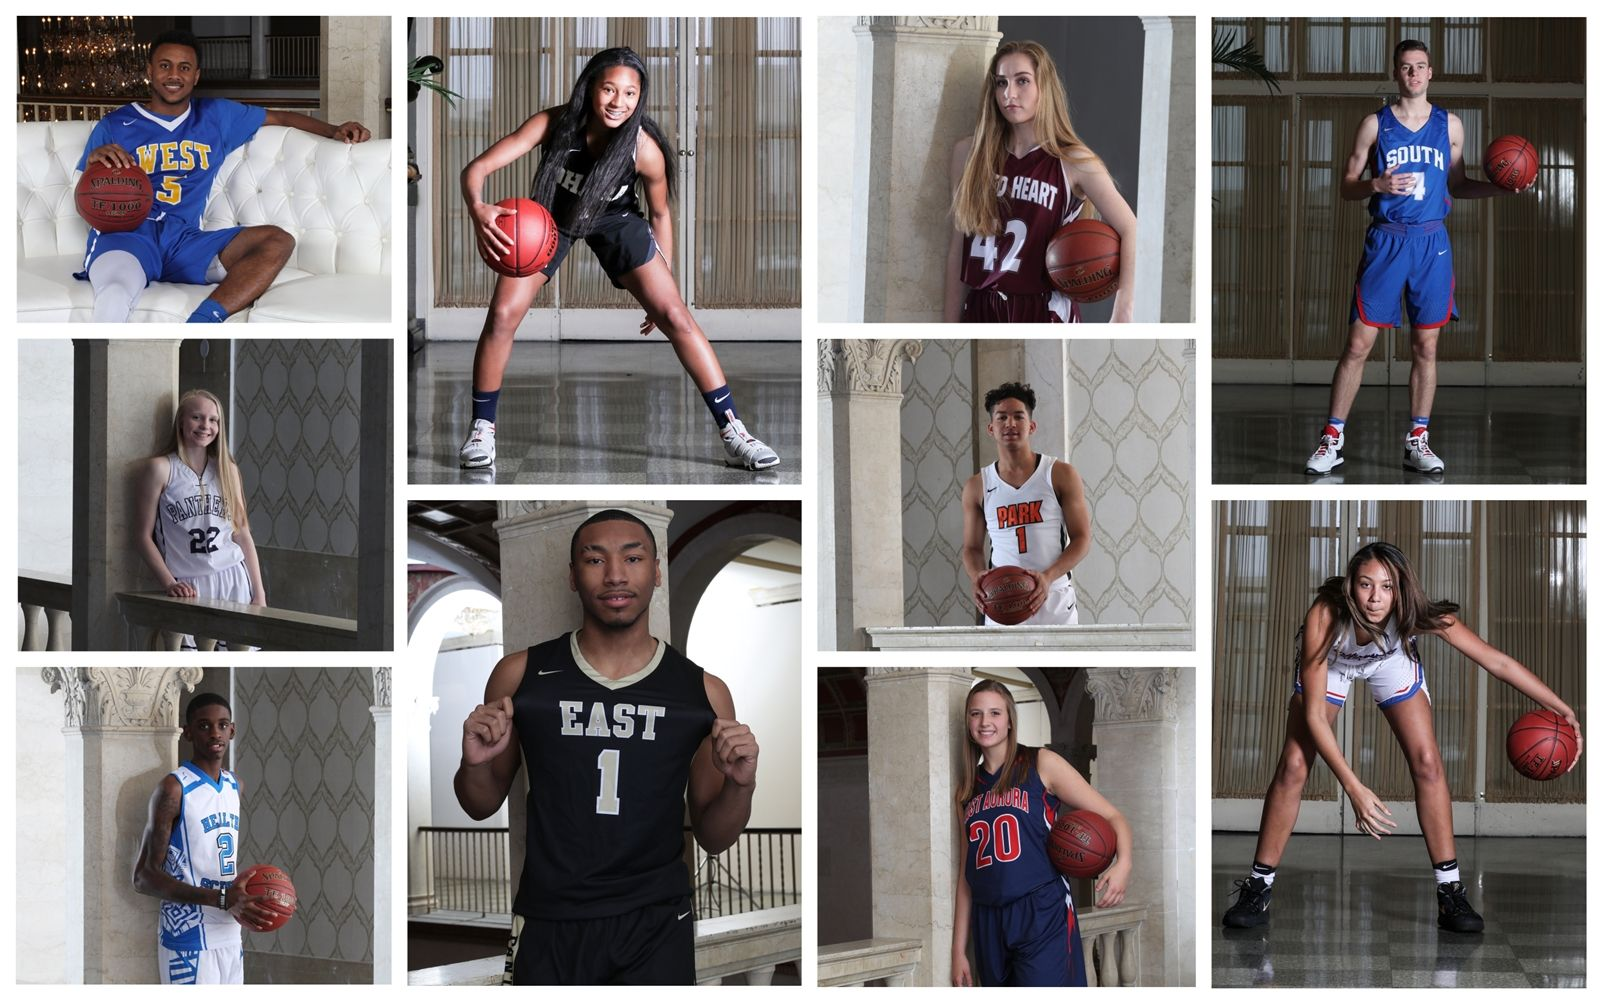 It's time for the best in high school basketball: The All-Western New York first team. Meet the team, selected by The News, and check out what made them the best five boys and girls players in the area.